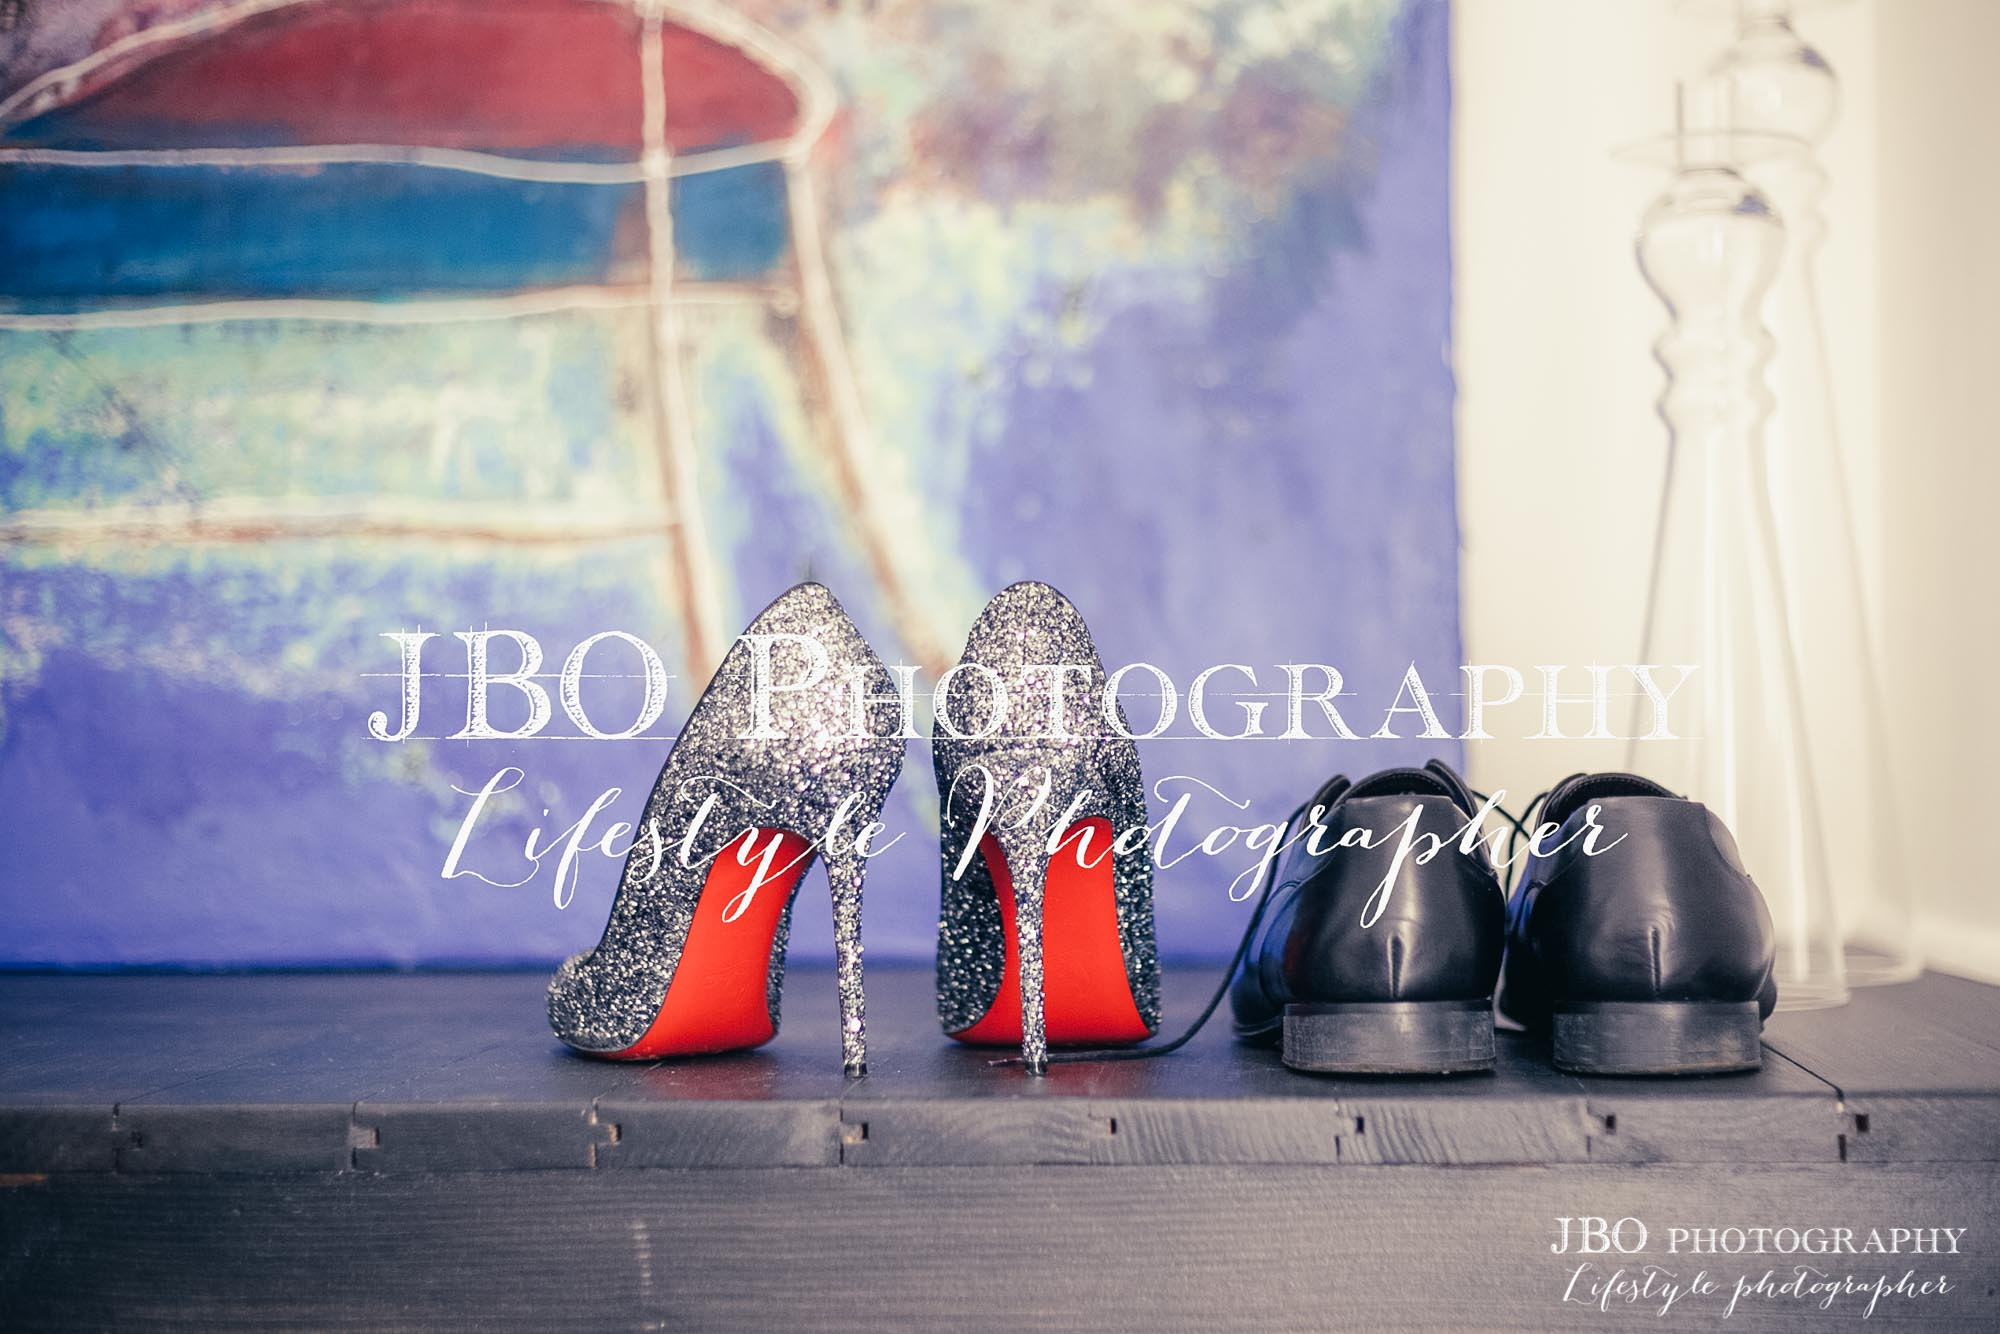 JBO Photography Photoreportage mariage lifestyle photography